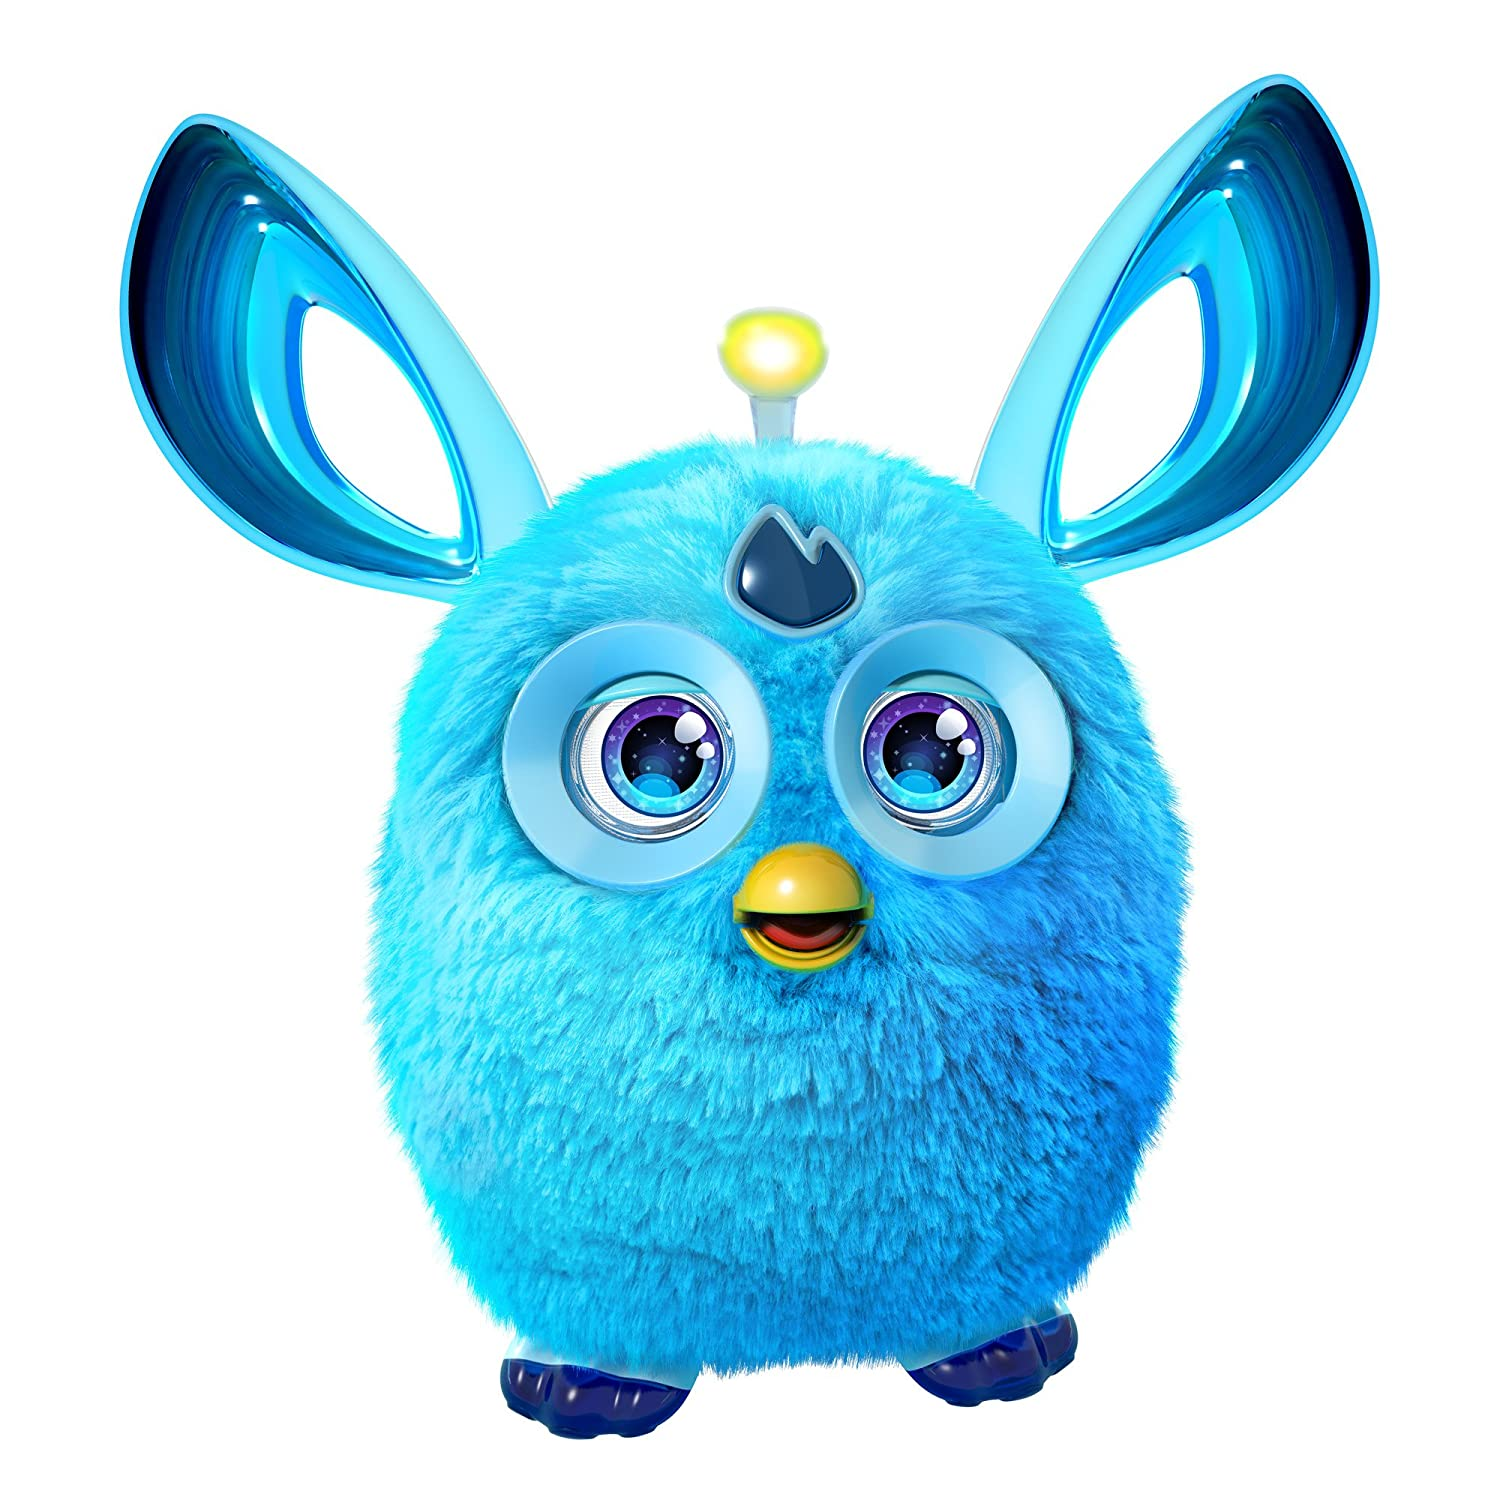 Furby Connect Blue Amazon Toys & Games